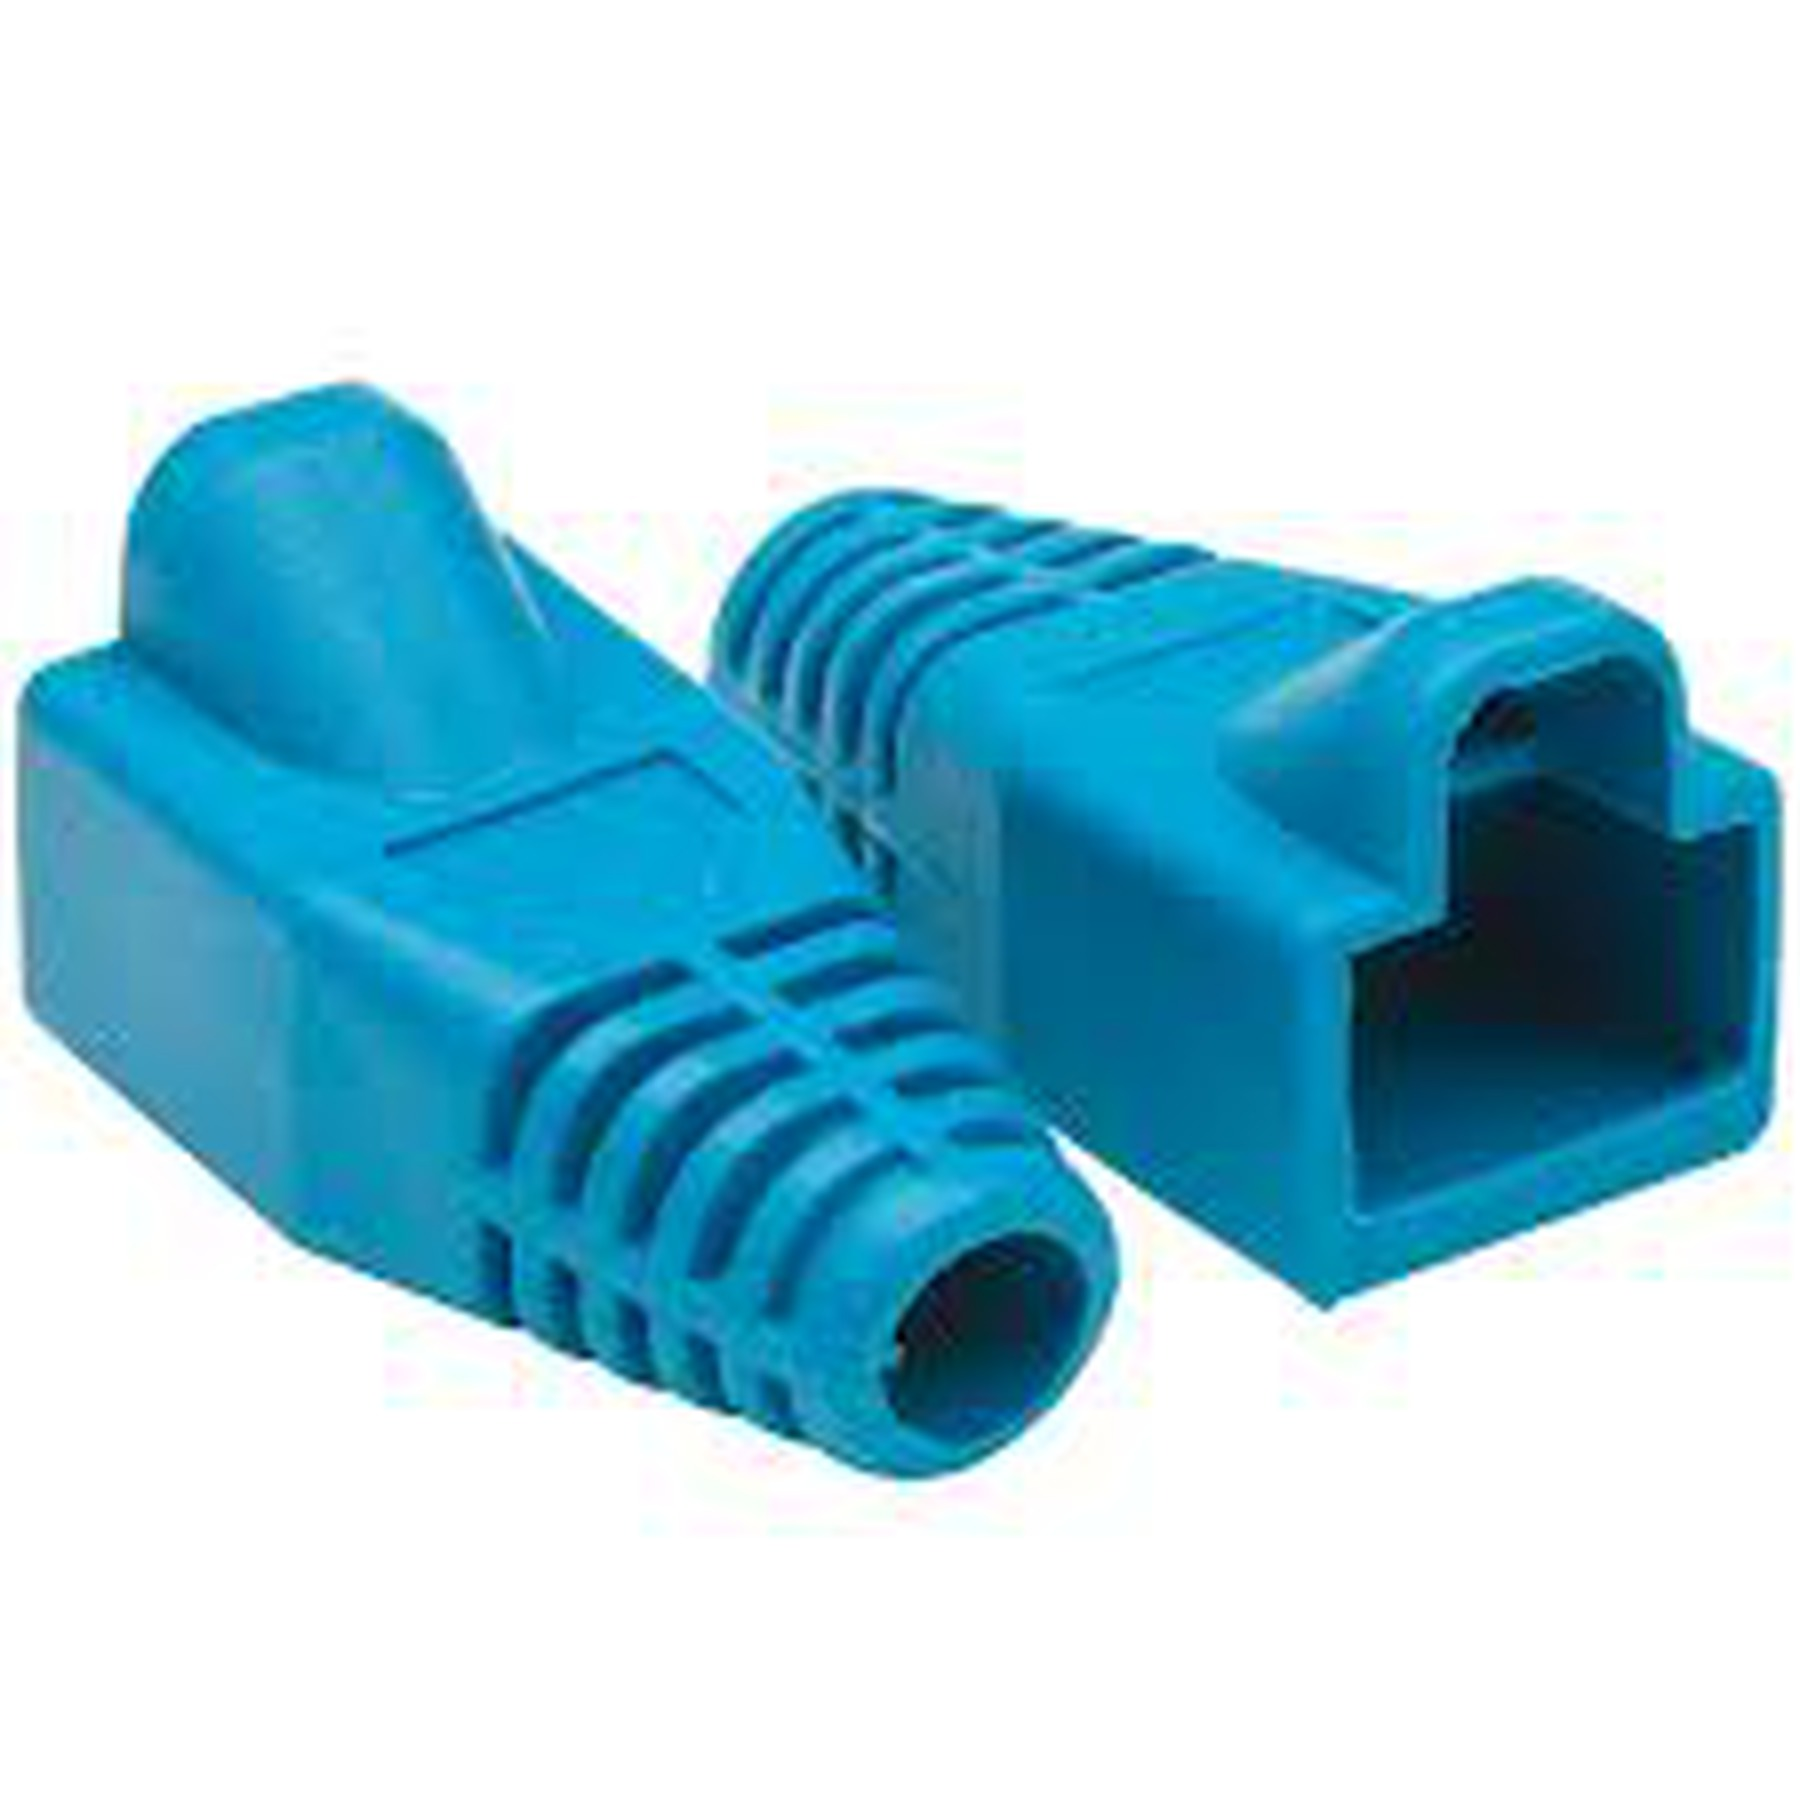 RJ45-BOOT-BL50 Product Zoom